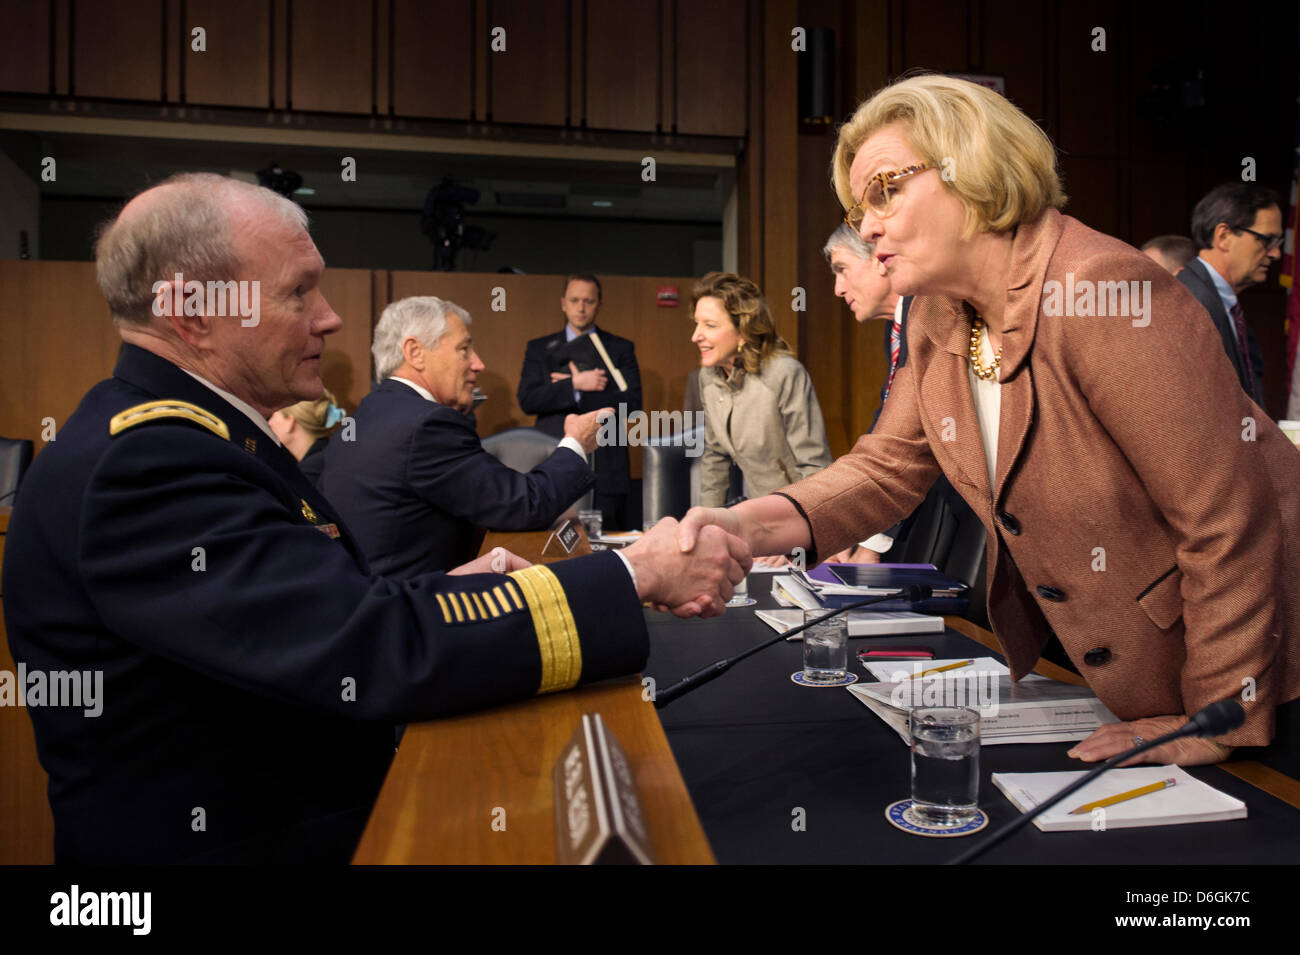 Chairman of the Joint Chiefs of Staff Gen. Martin Dempsey greets Senator Claire McCaskill before the start of the - Stock Image